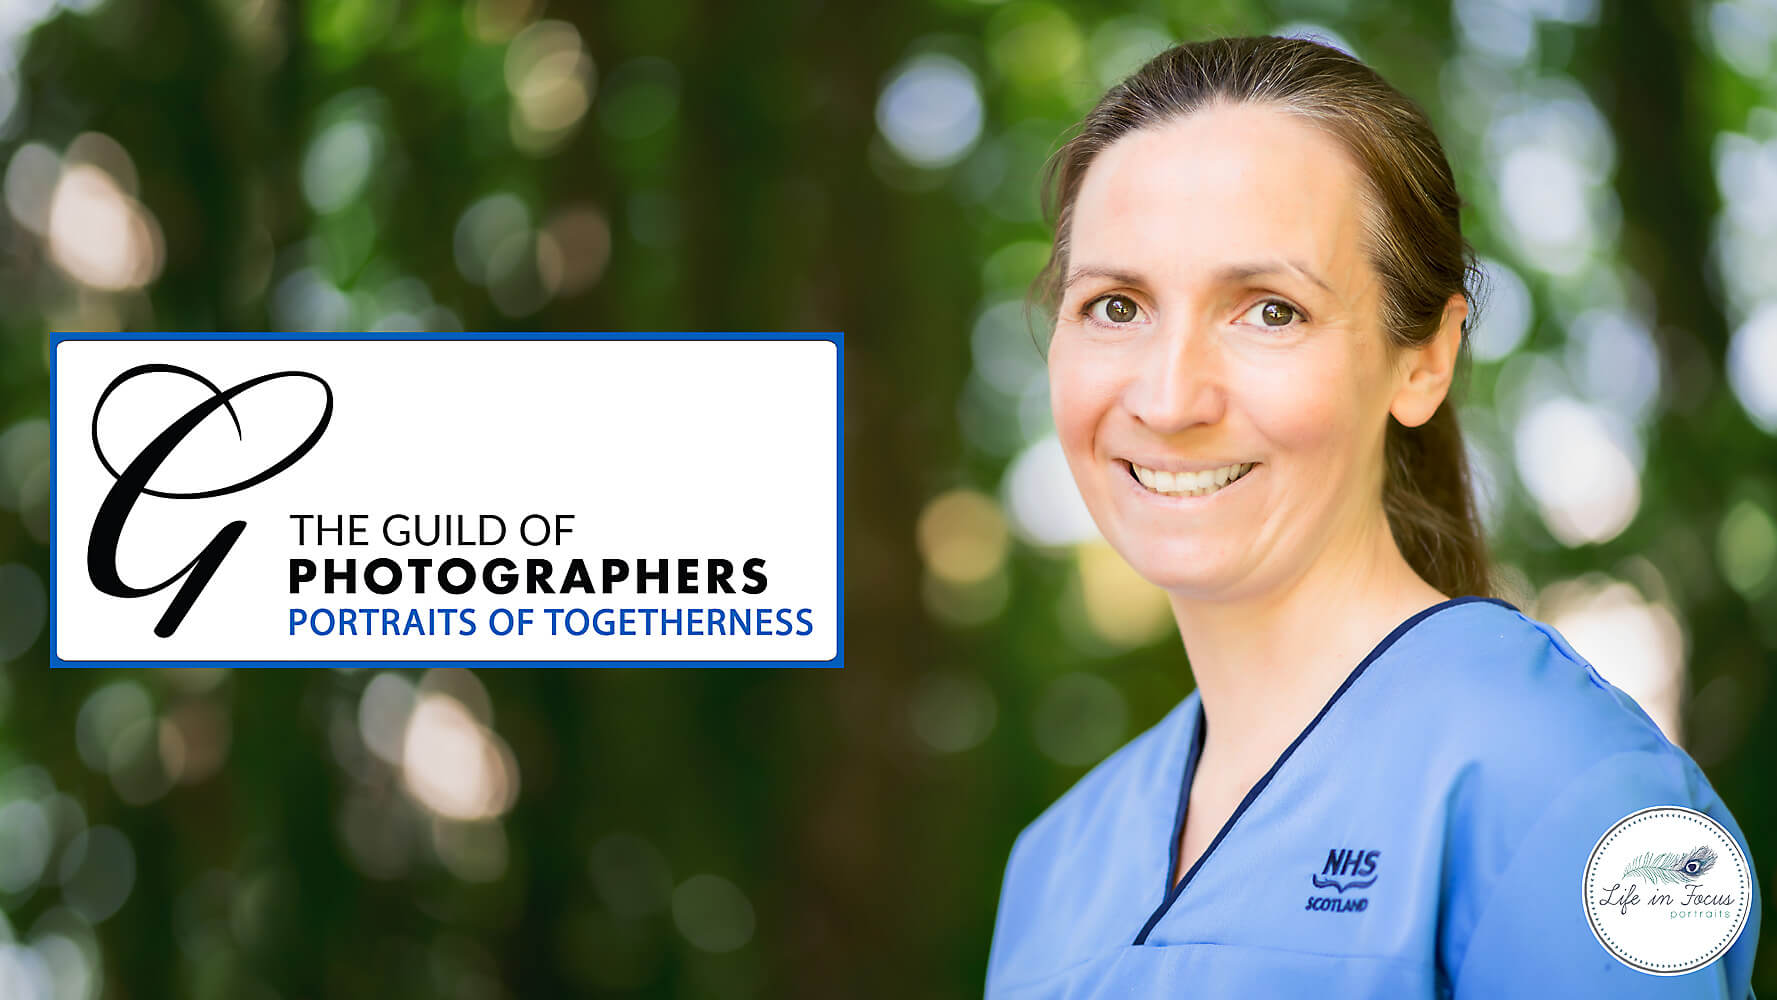 Portrait of NHS Scotland nurse Portraits of Togetherness Campaign free photoshoot for NHS heroes Life in Focus Portraits Helensburgh photography studio